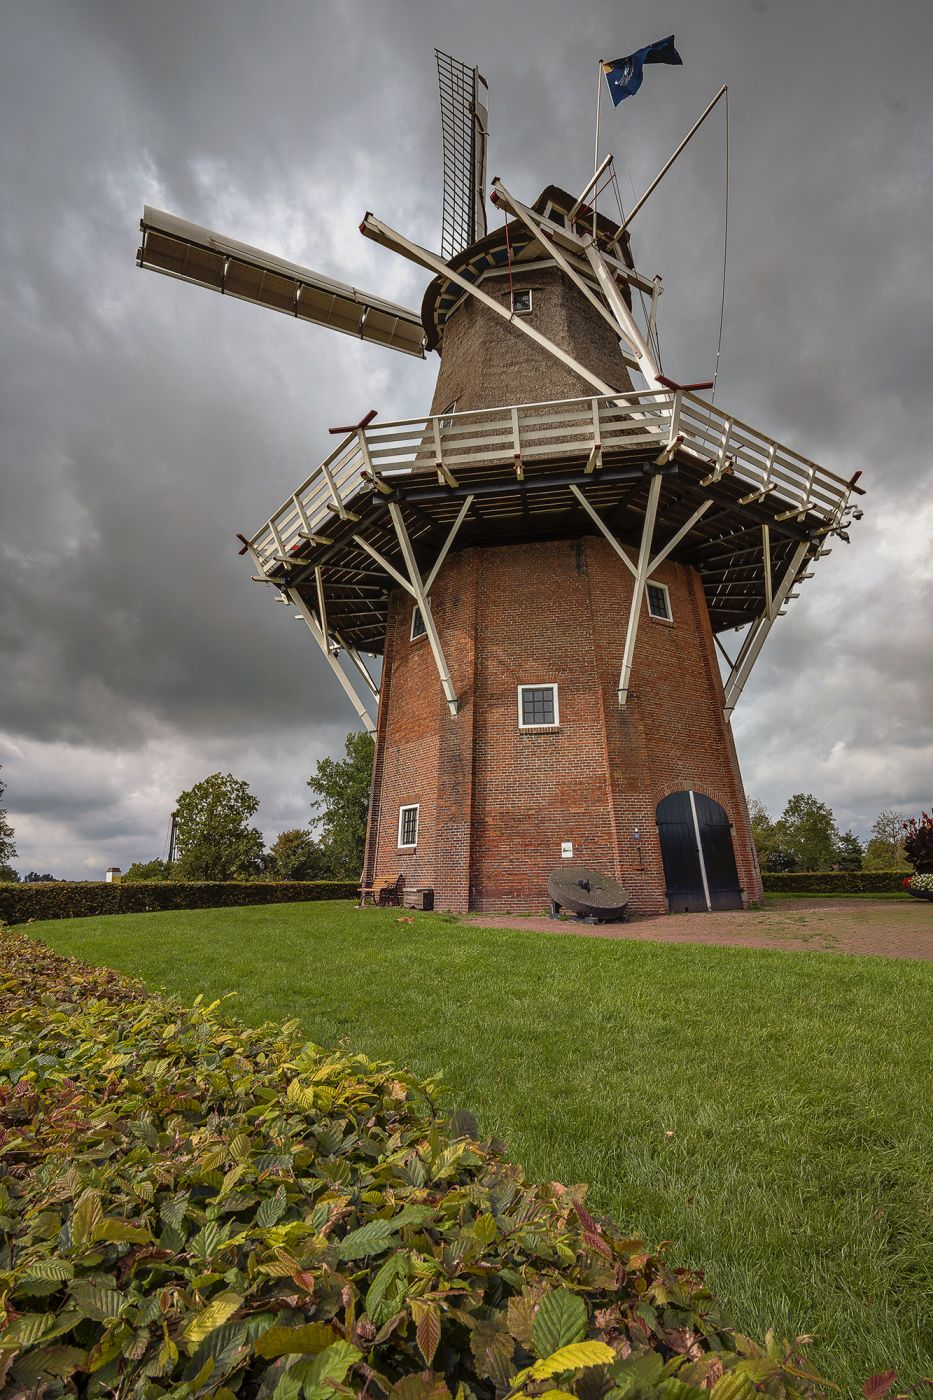 Windmill in Dokkum, Netherlands